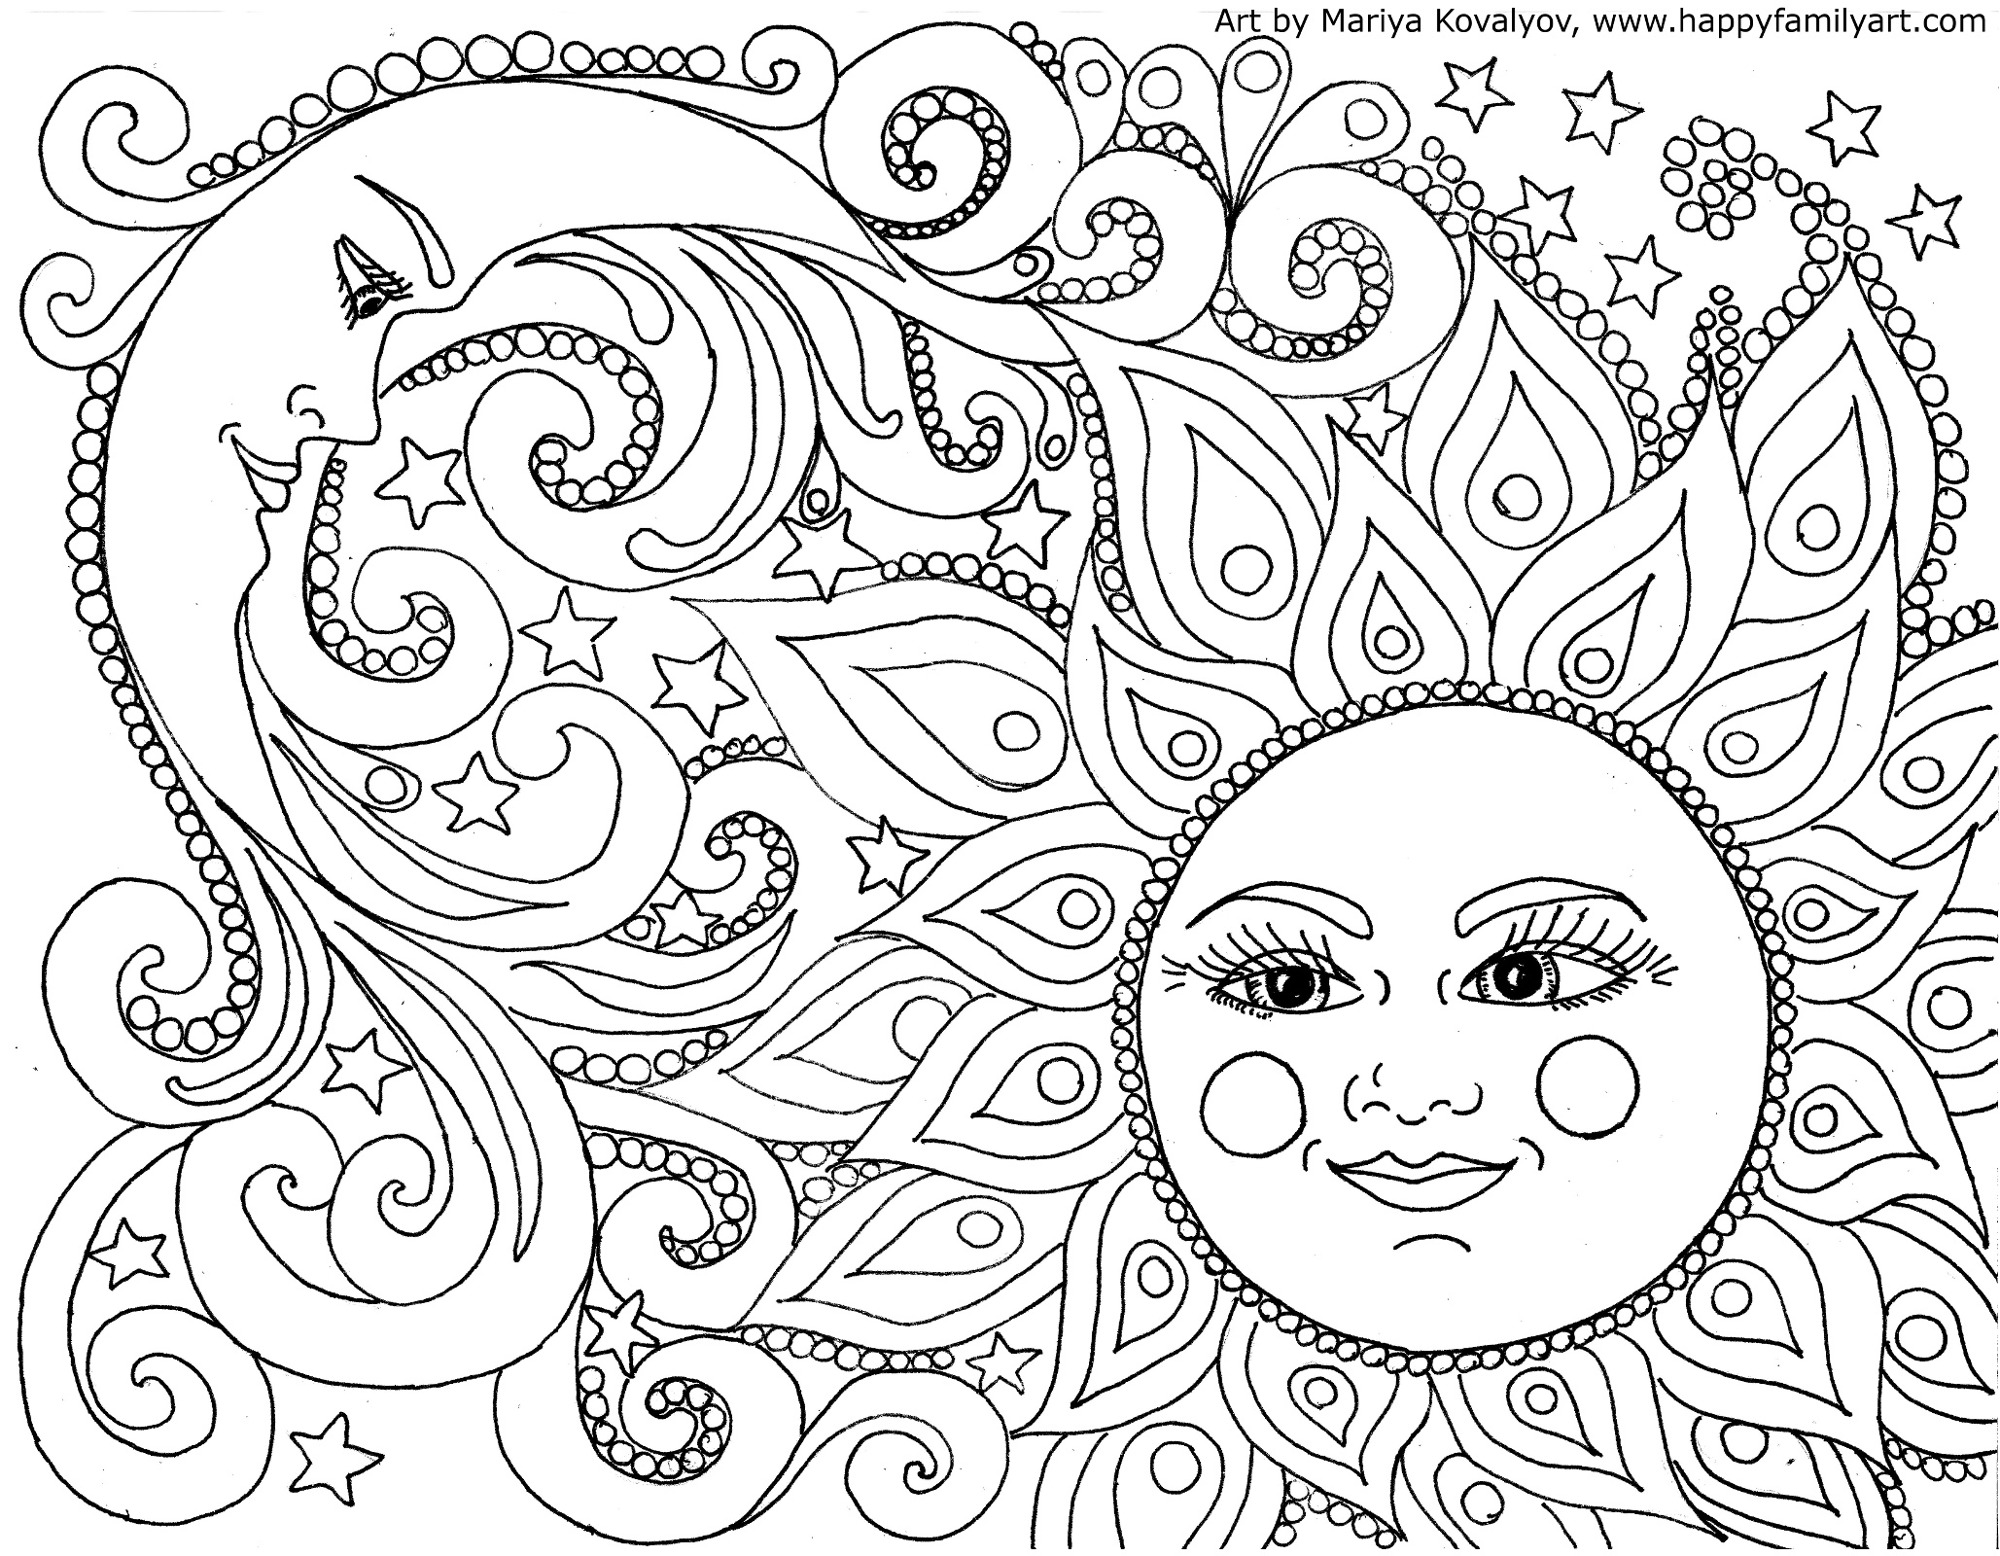 Spring Coloring Pages For Adults Prepossessing Happy Family Art  Original And Fun Coloring Pages